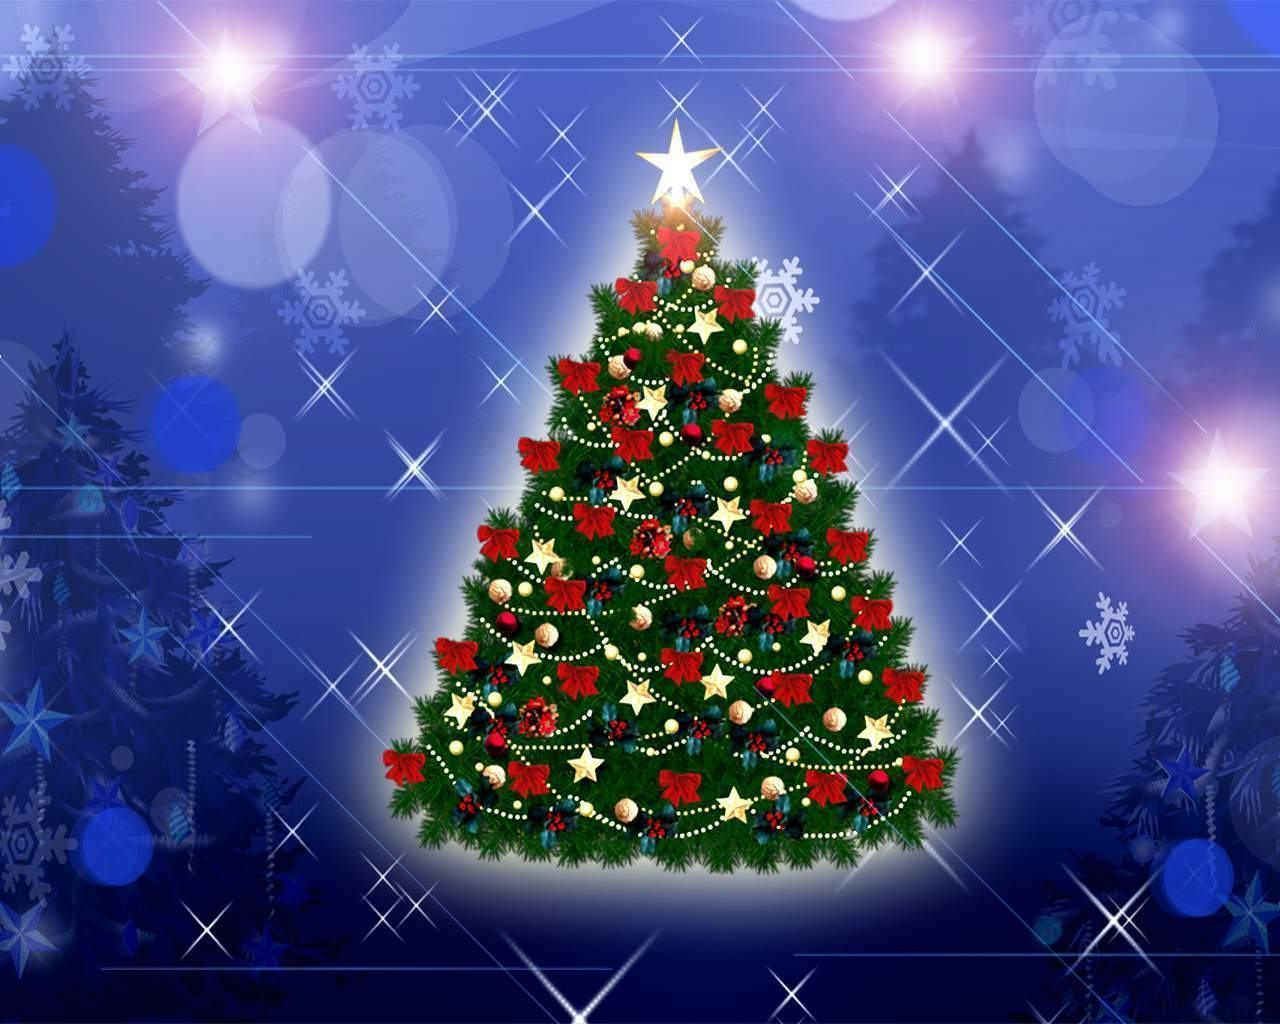 x mas wallpapers backgrounds download free x mas christmas desk